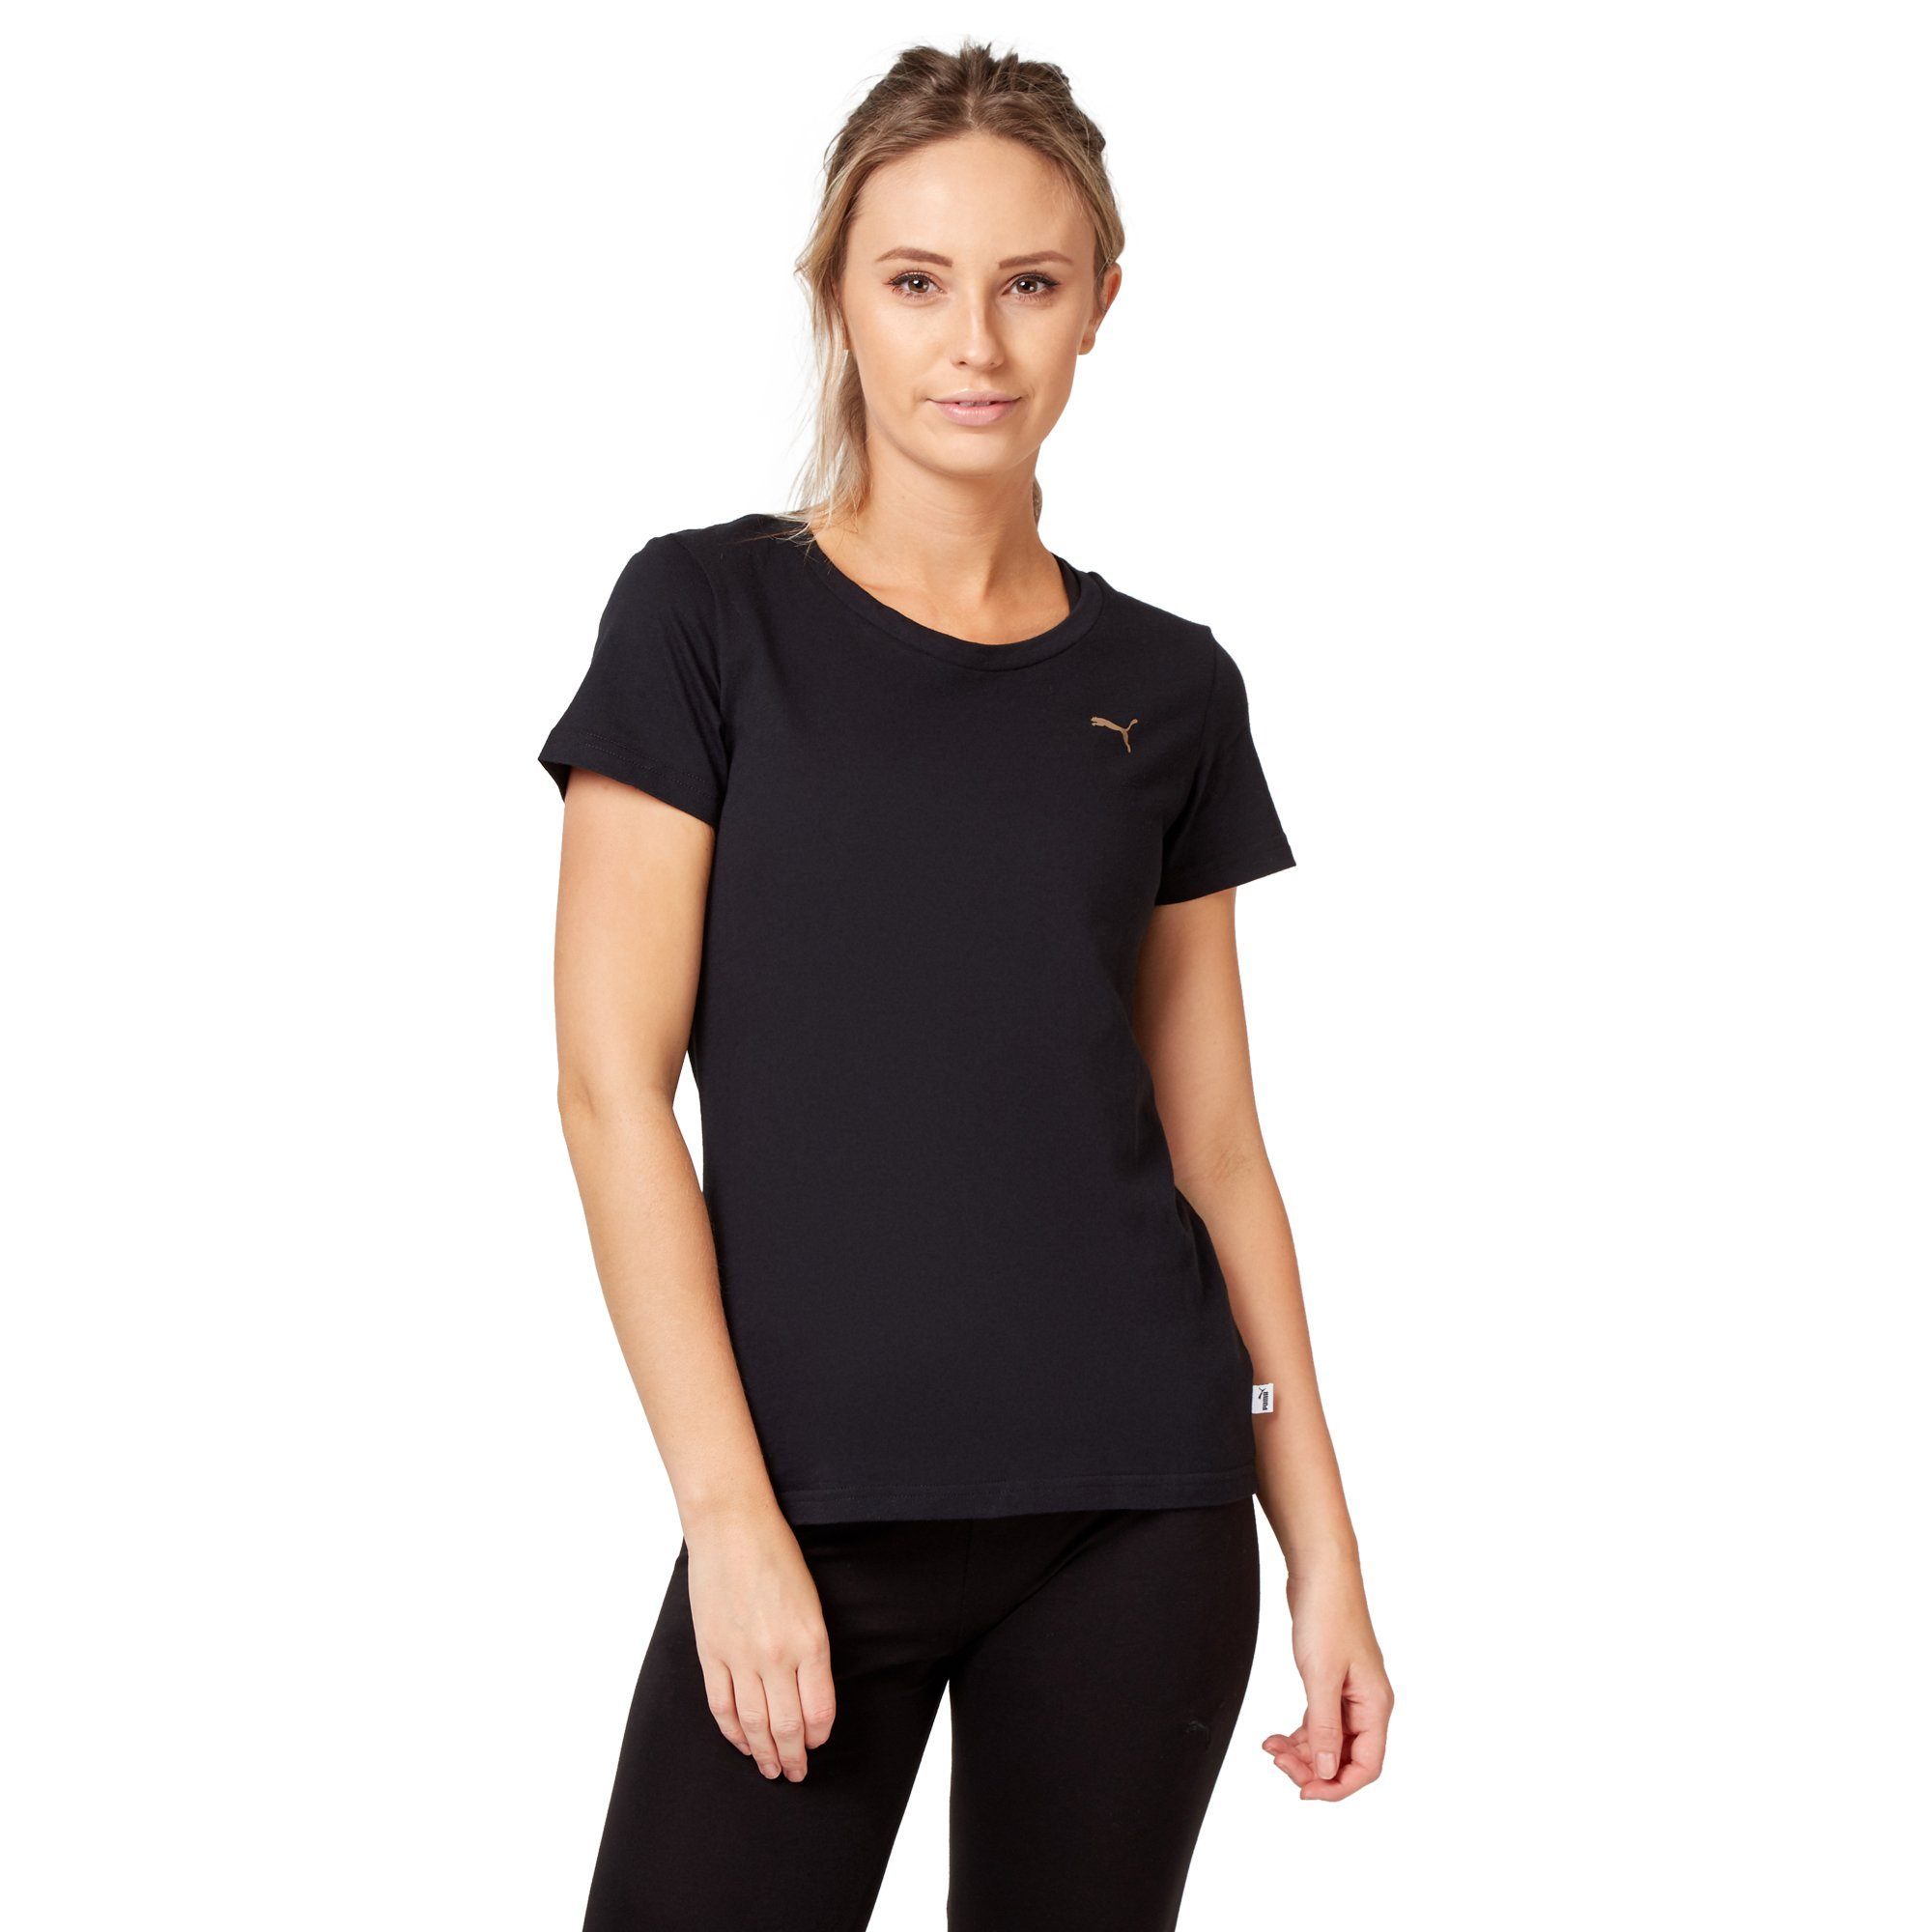 Puma Women's Athletic Tee - Black Apparel Puma